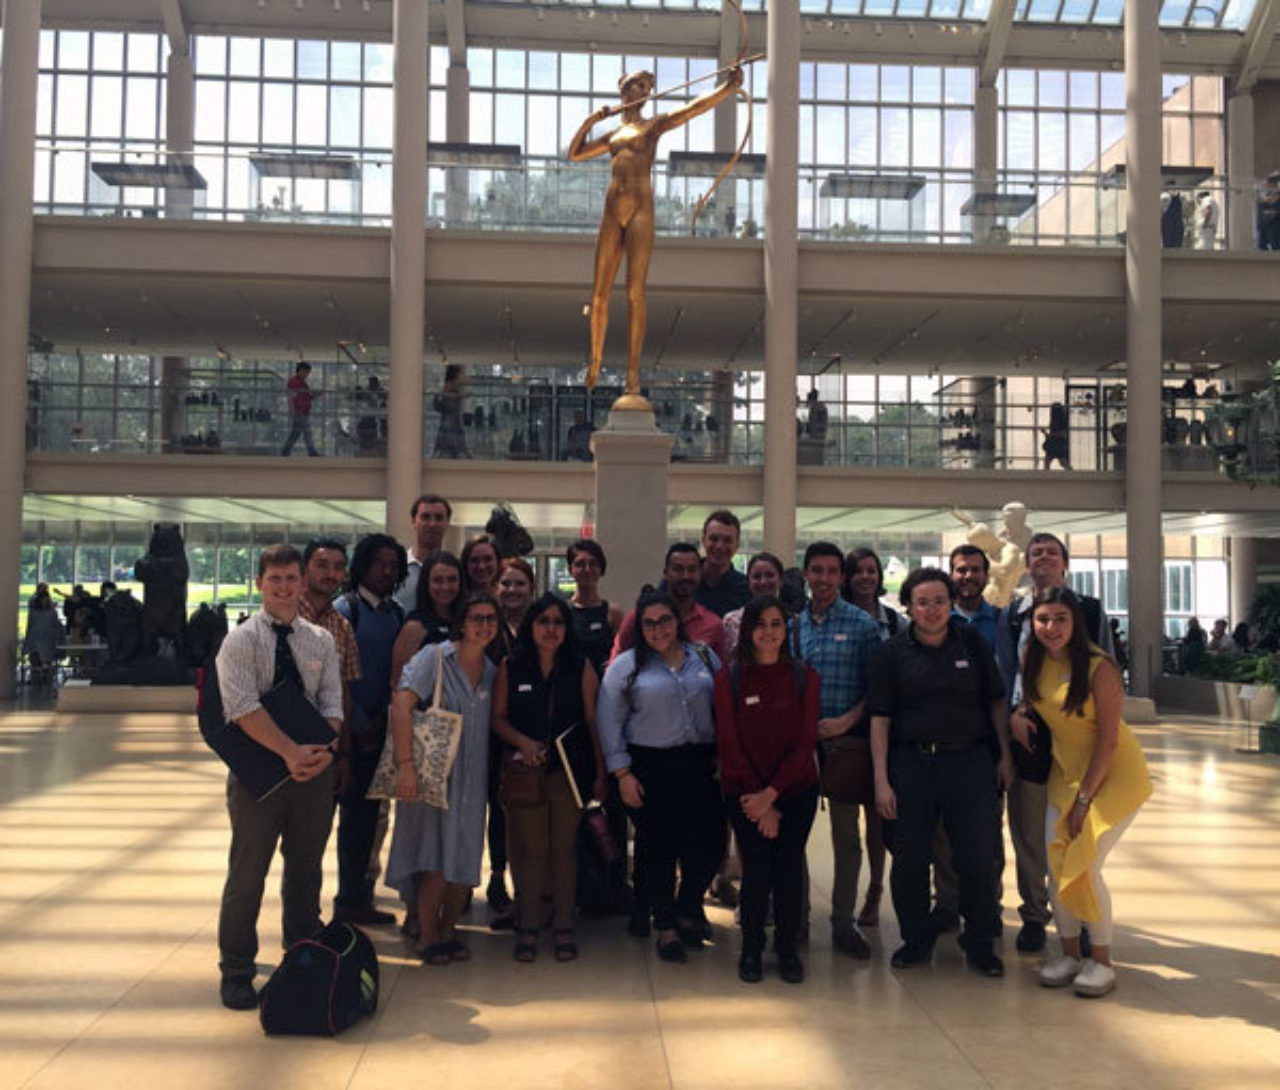 The Summer Studio group stands in front of the statue of Diana at The Metropolitan Museum of Art